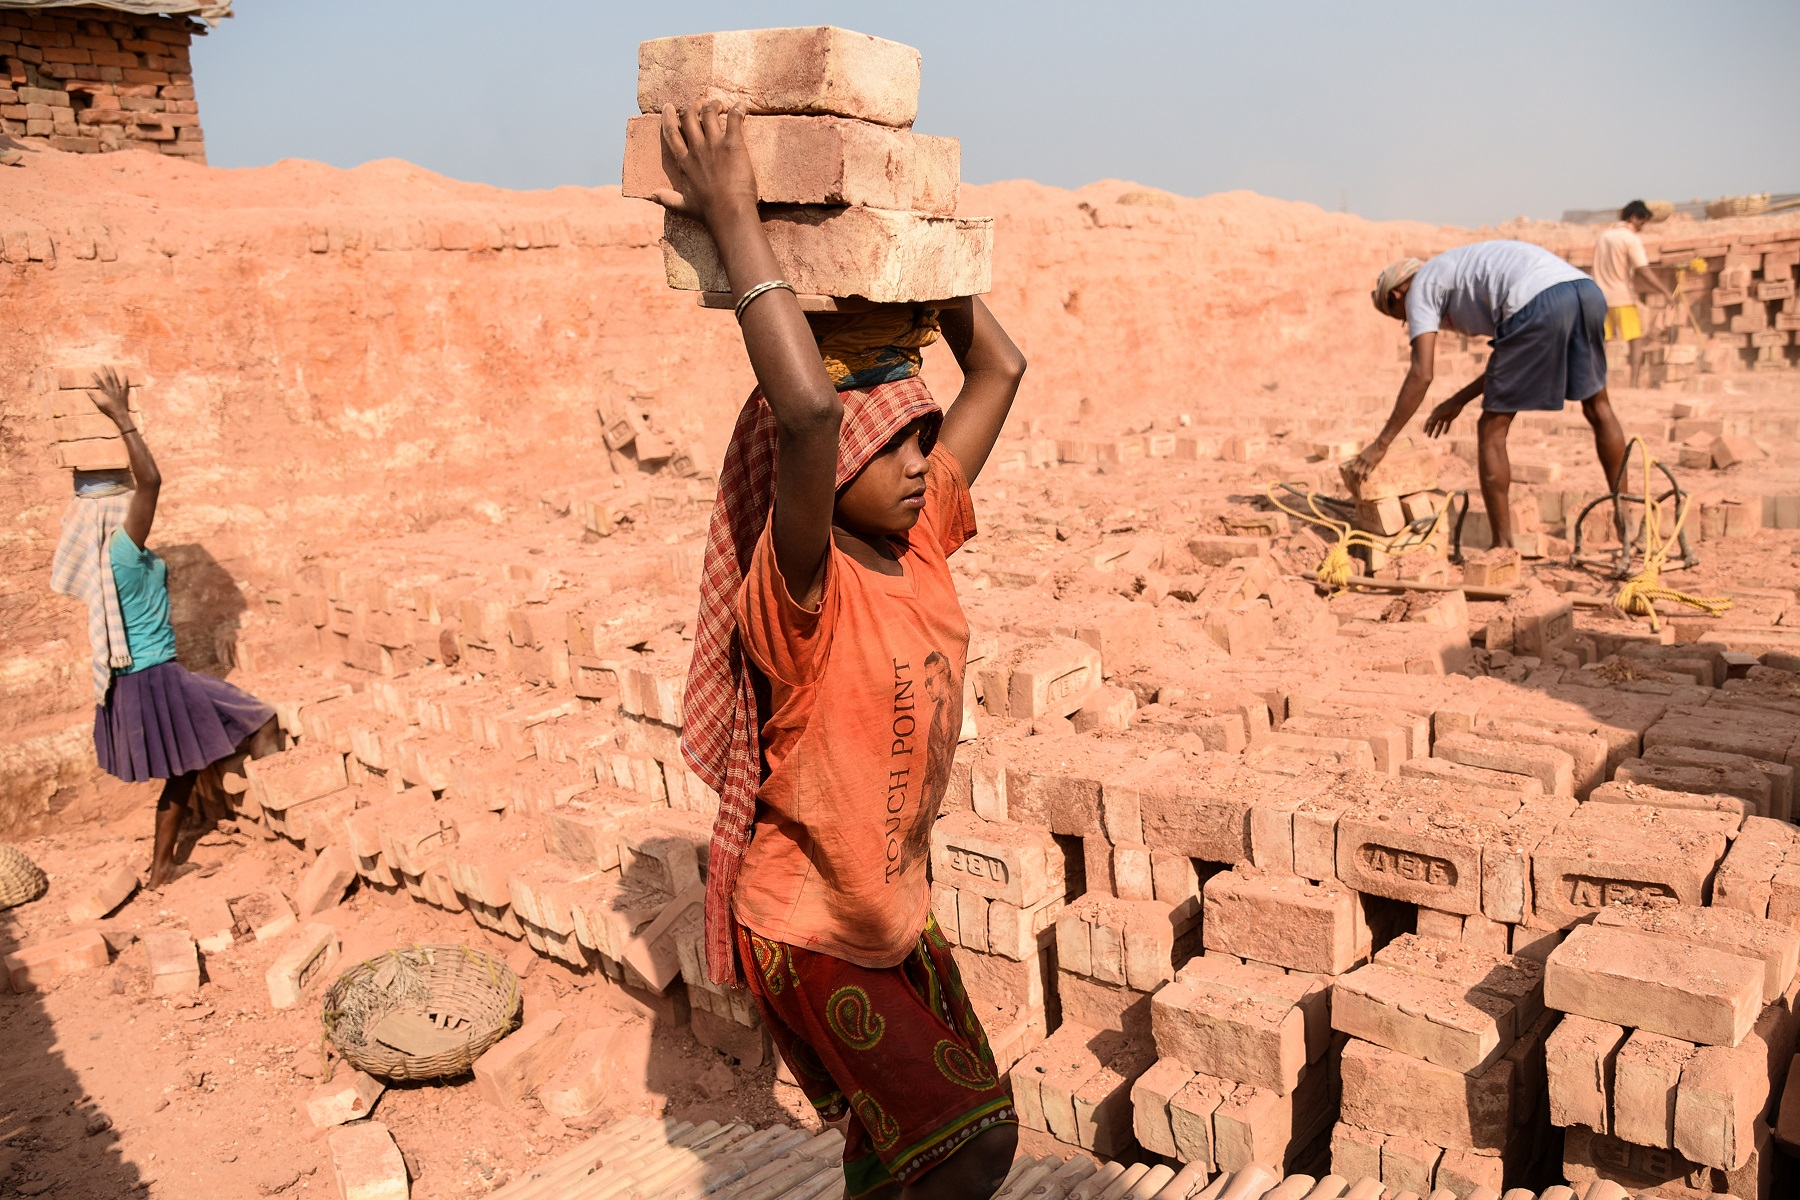 A female child labourer with bricks on her head